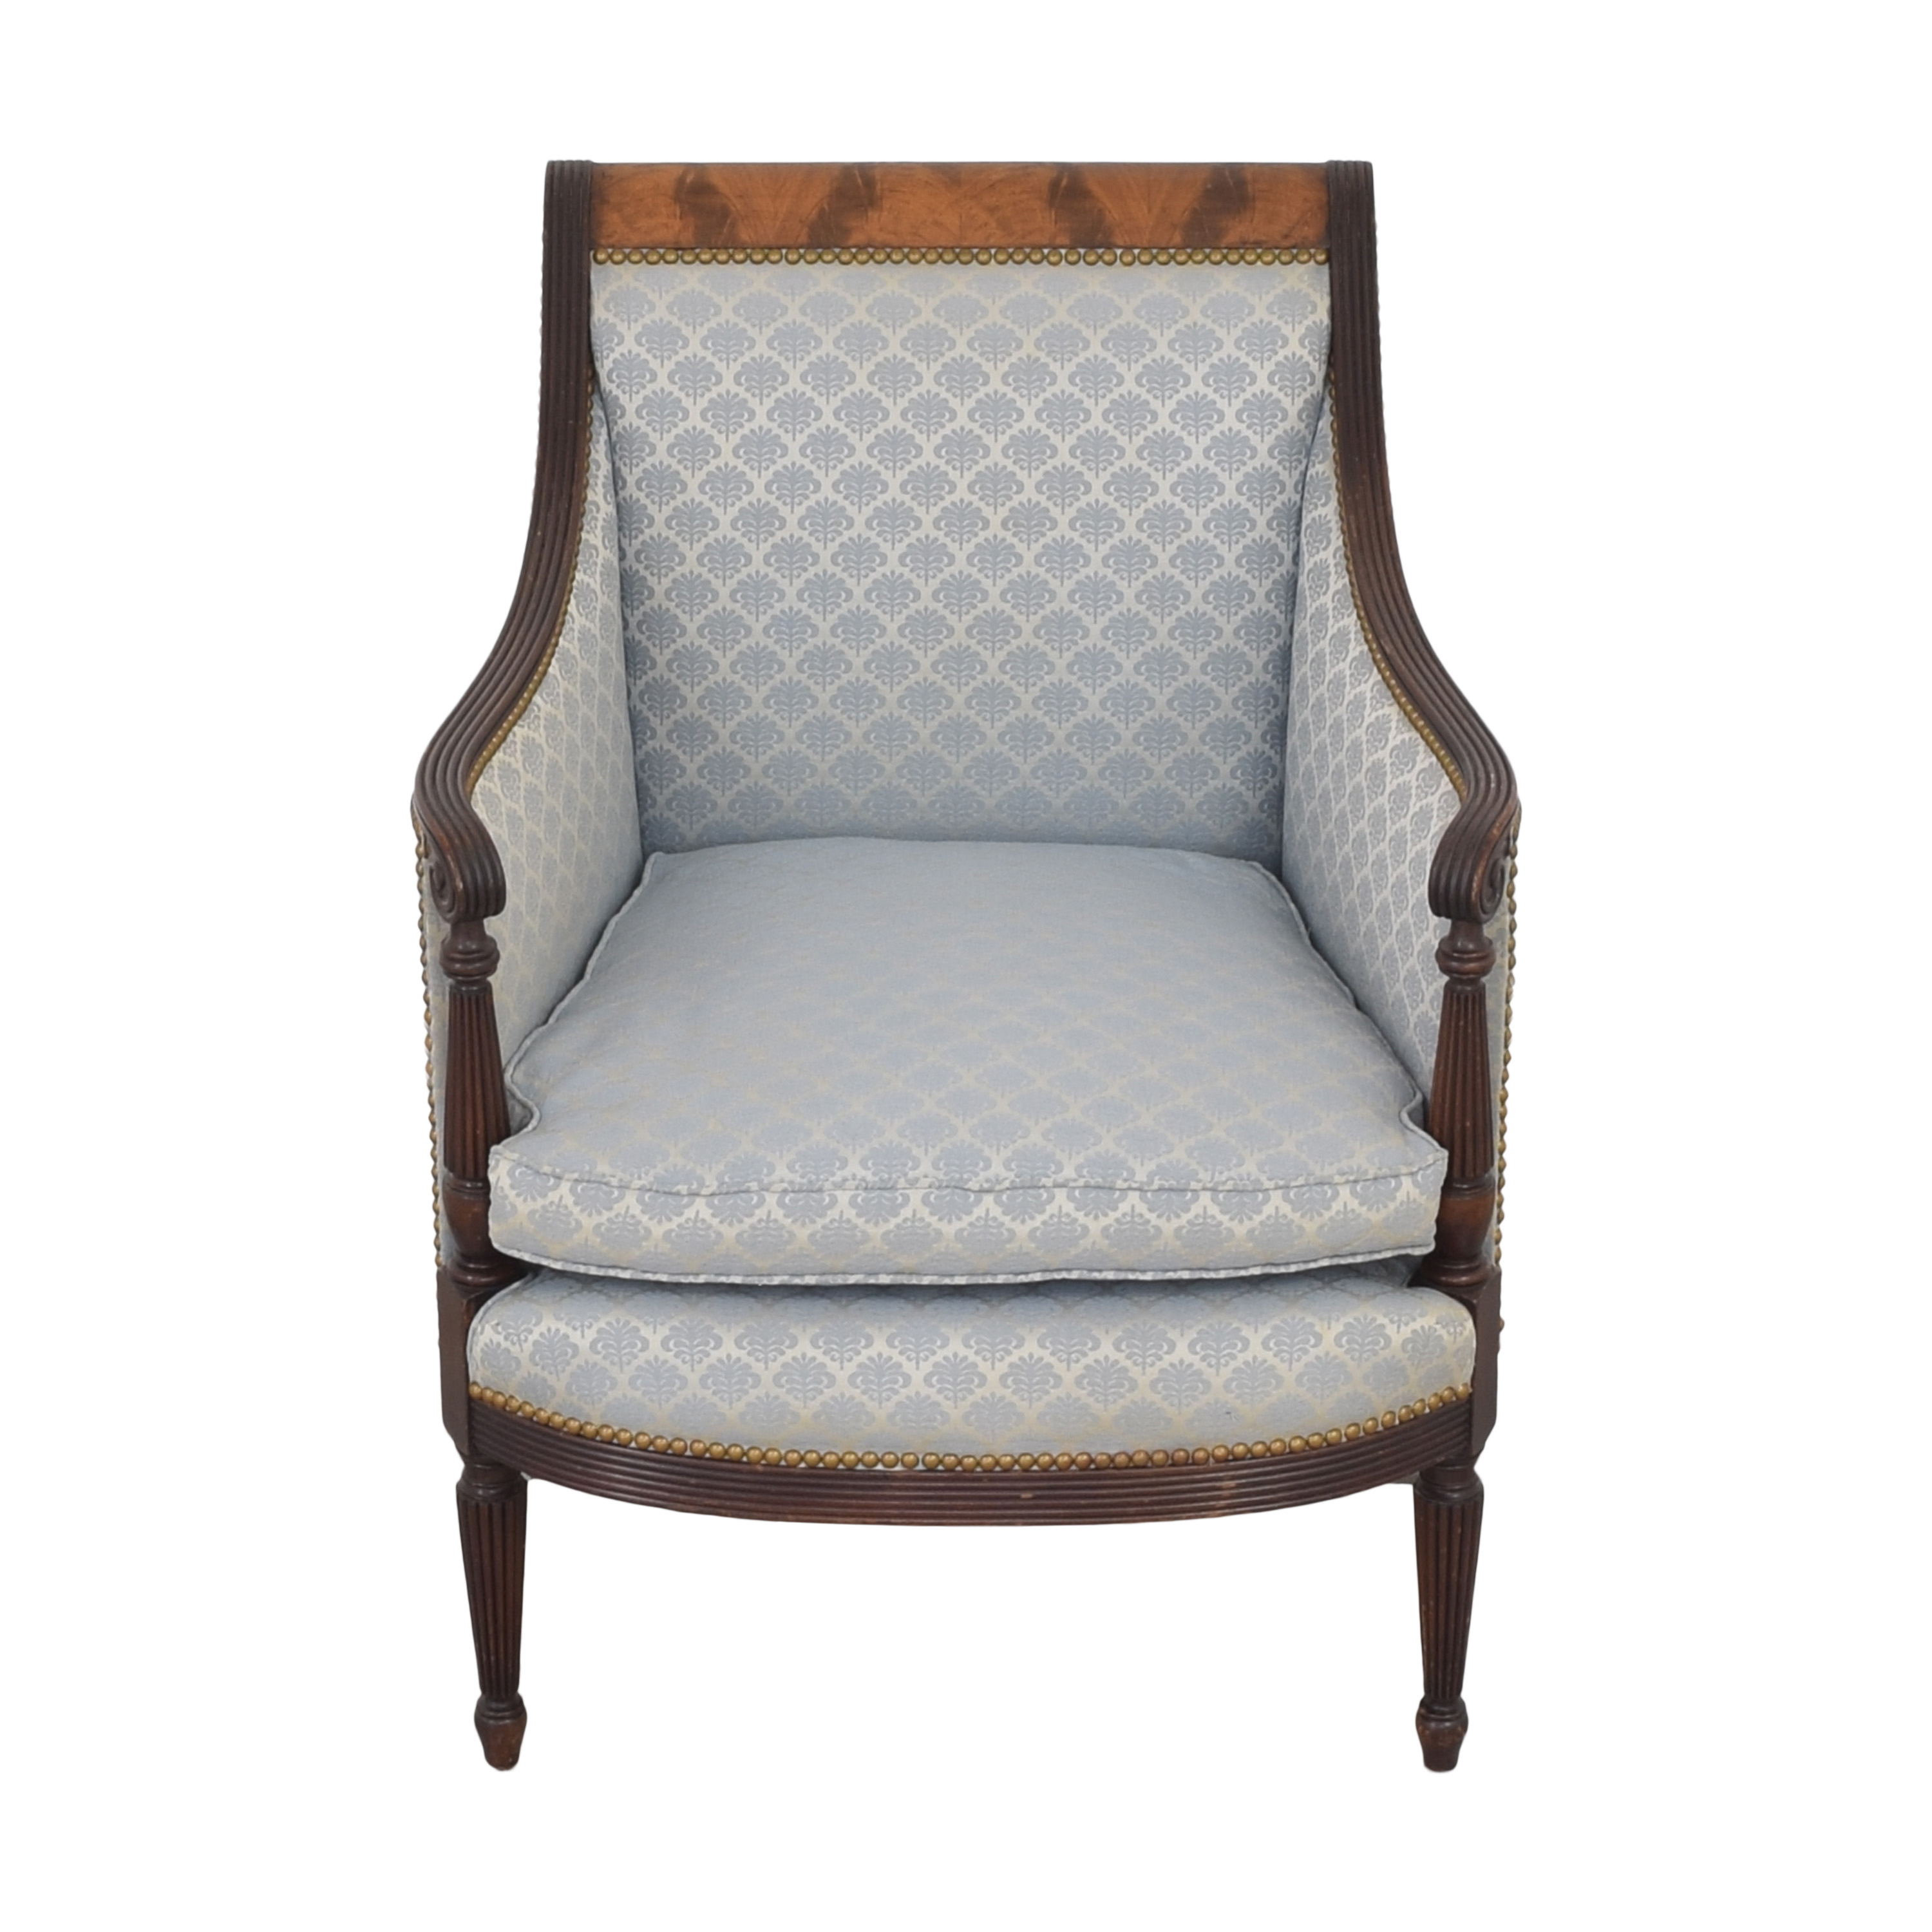 Vintage Upholstered Accent Chair coupon